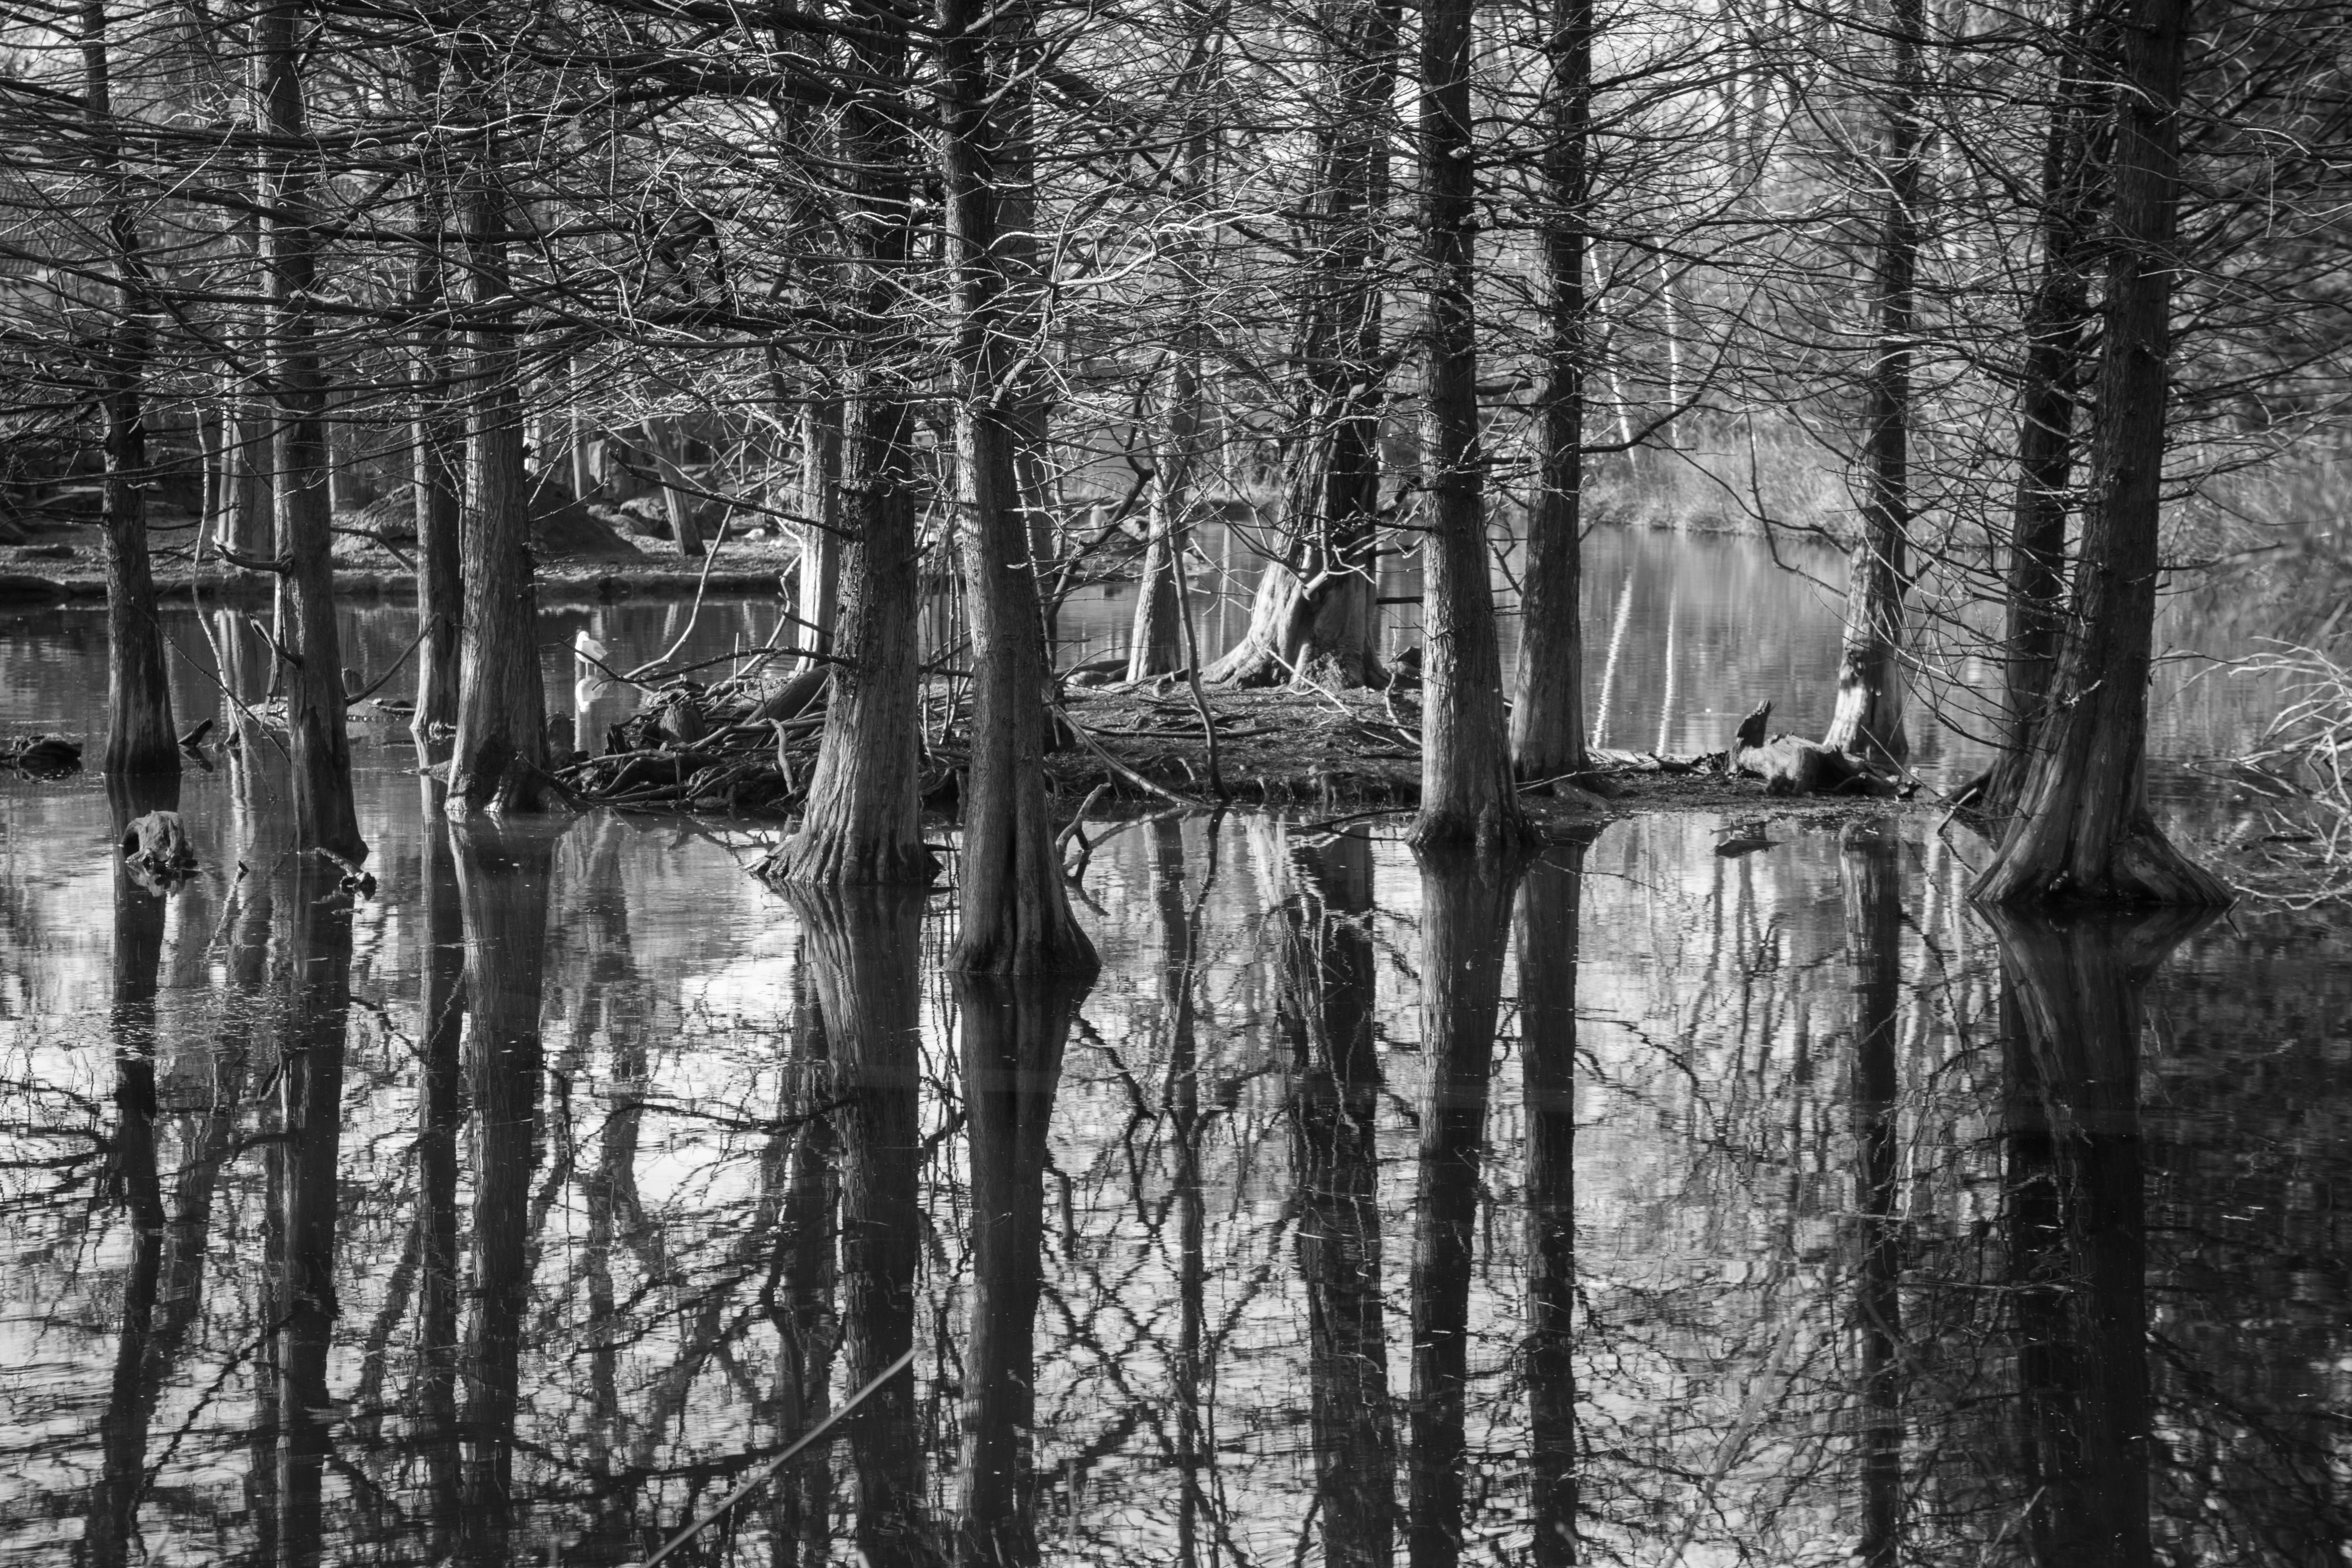 Gray scale photography of trees surrounded by body of water · free